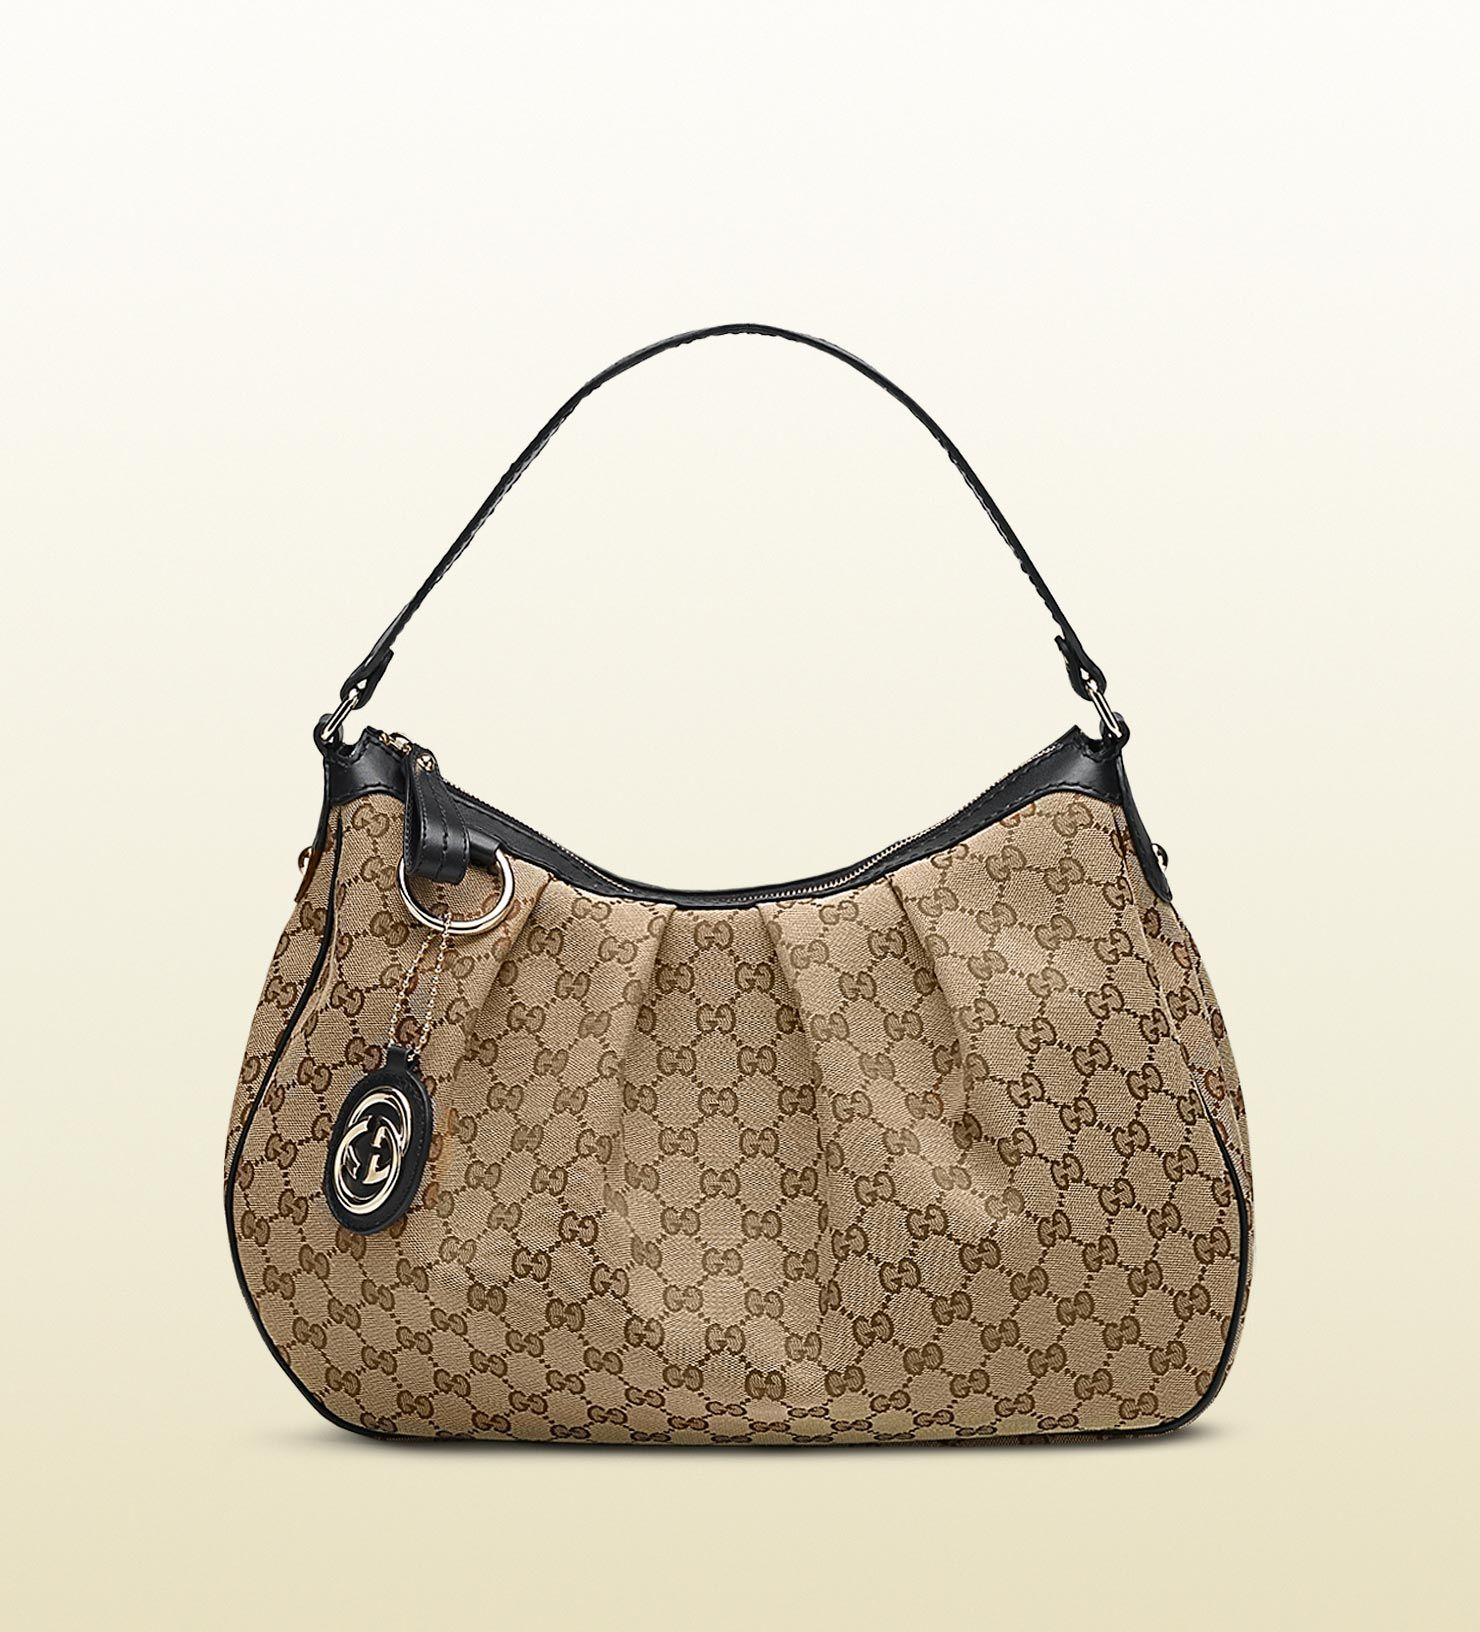 outlet store 8be90 918a9 Gucci 'sukey' medium hobo with detachable interlocking G ...